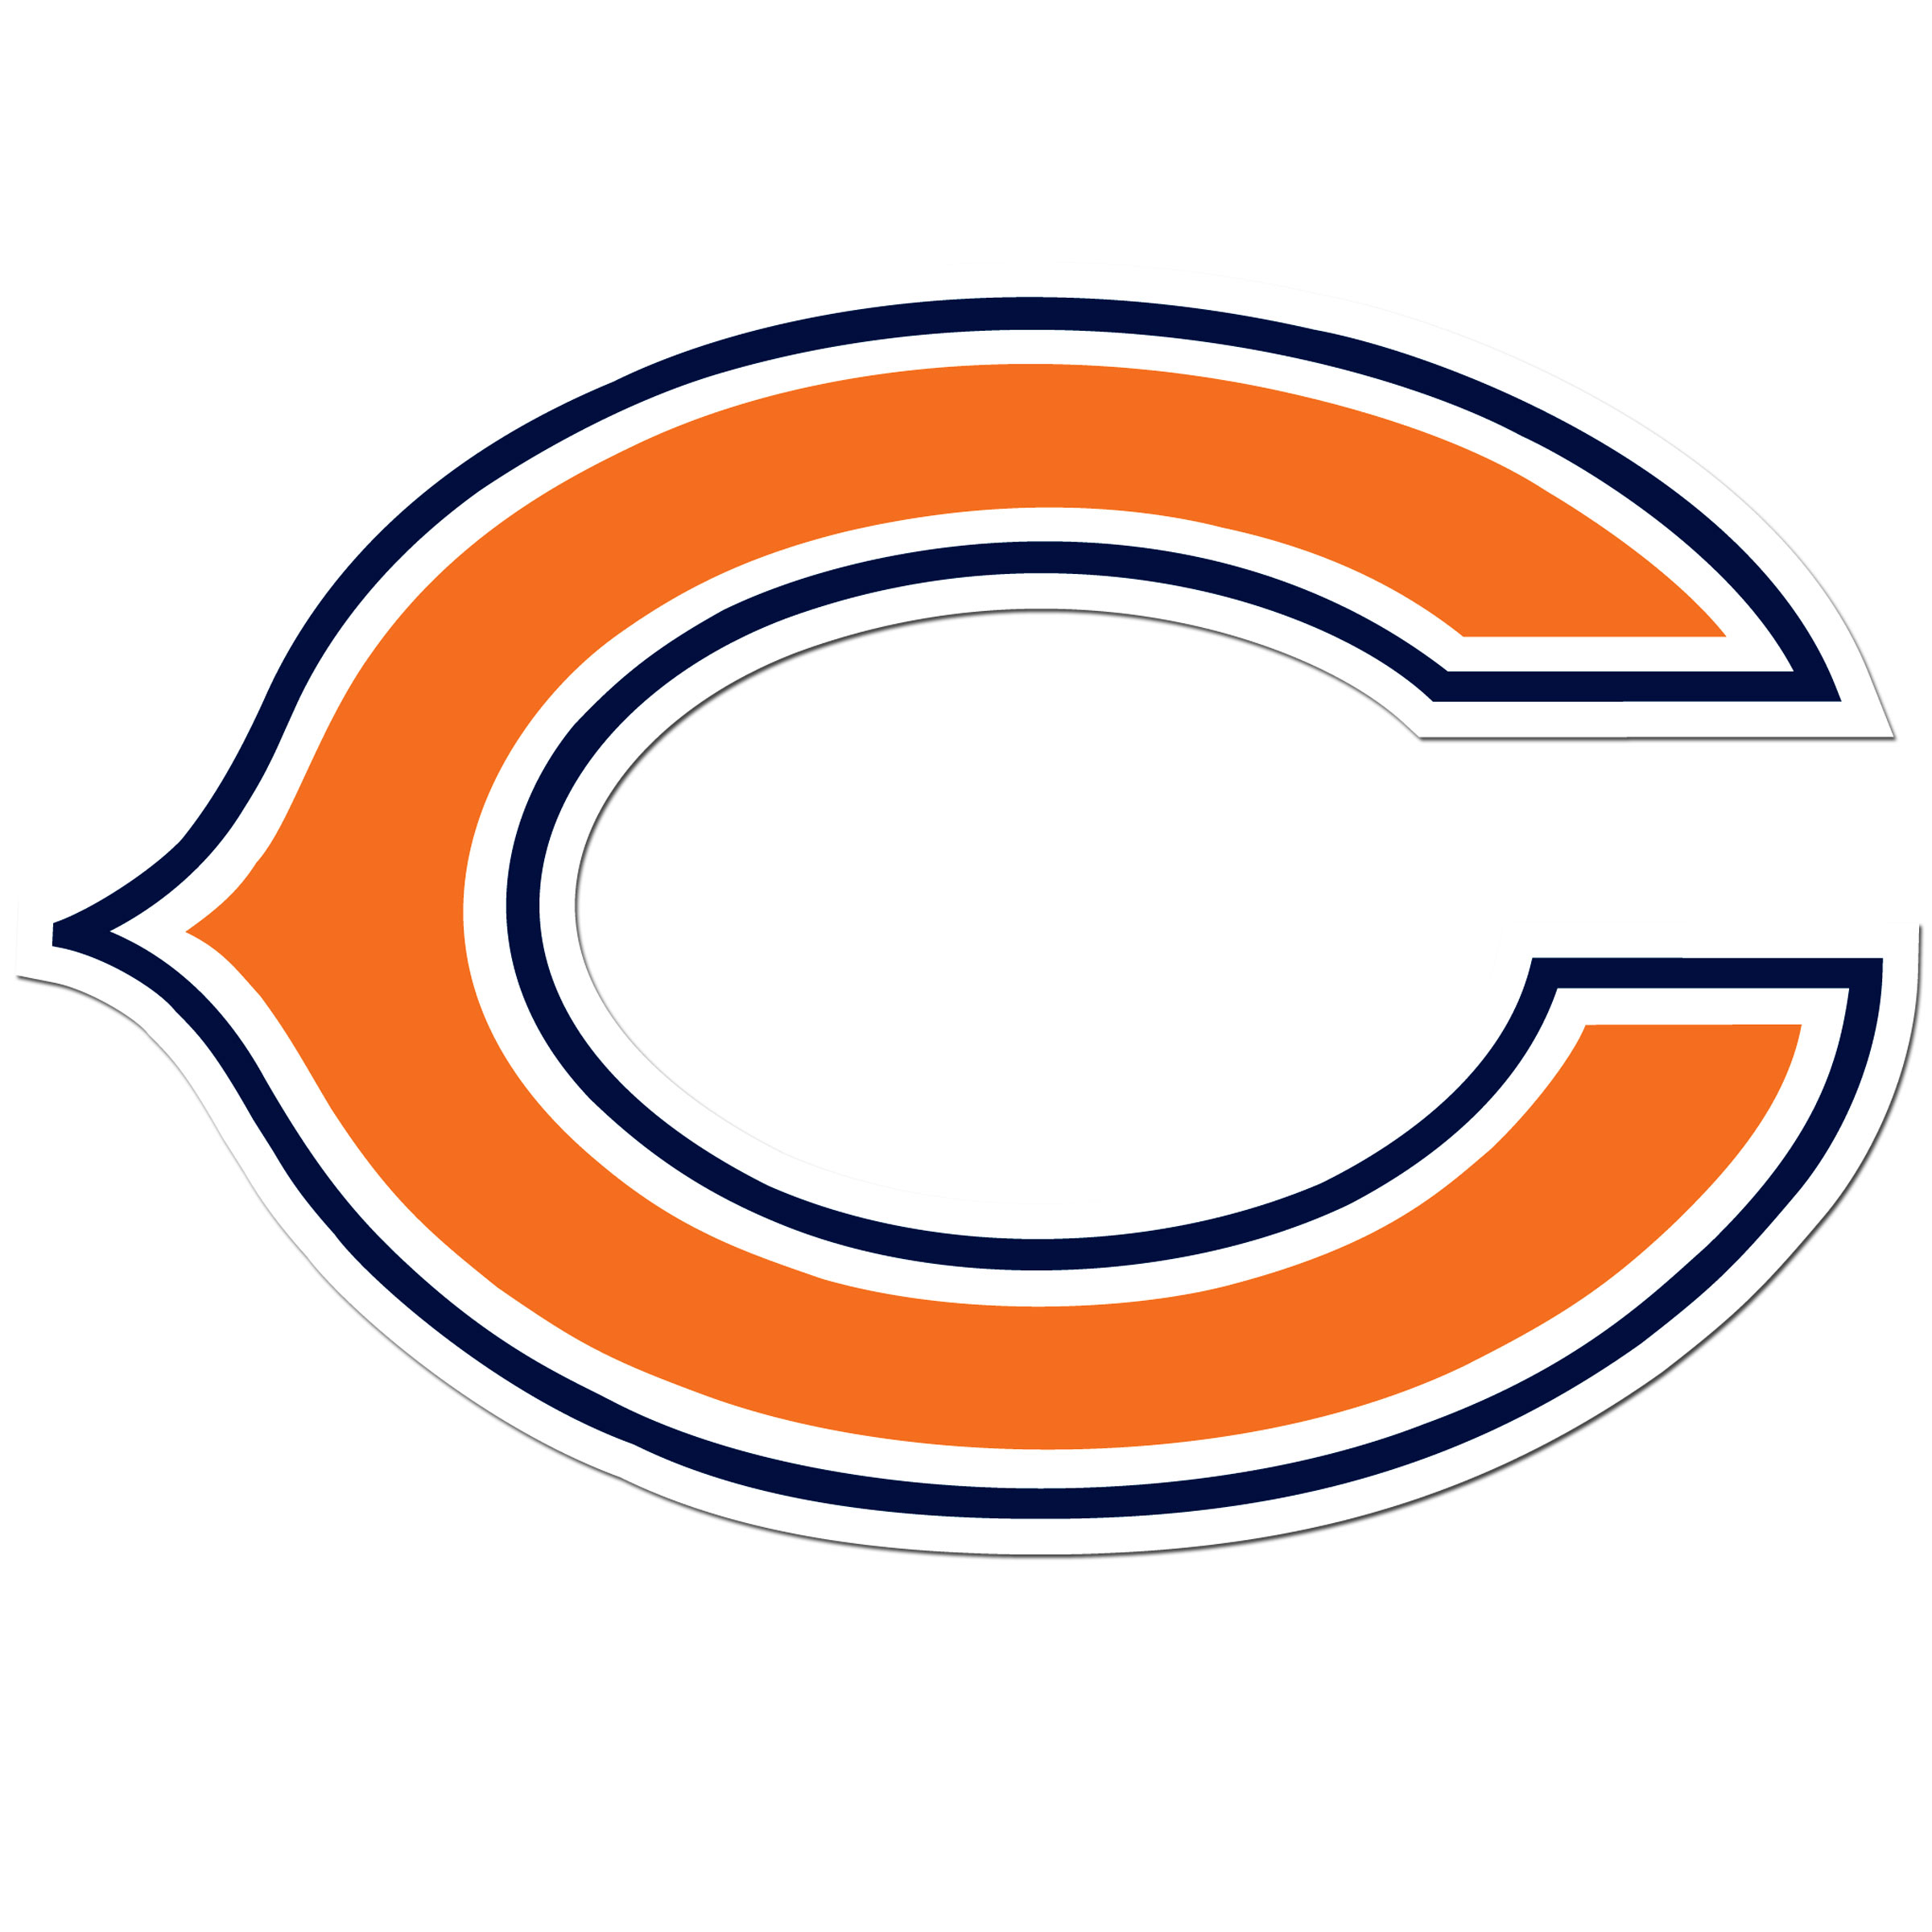 Chicago Bears 8 inch Auto Decal - This bold, 8 inch Chicago Bears is a great way to show off your team pride! The low tack vinyl decal is easily positioned and adjusted to make sure you get that logo in just the right spot on your vehicle. Designed to be used on the outside of the window.